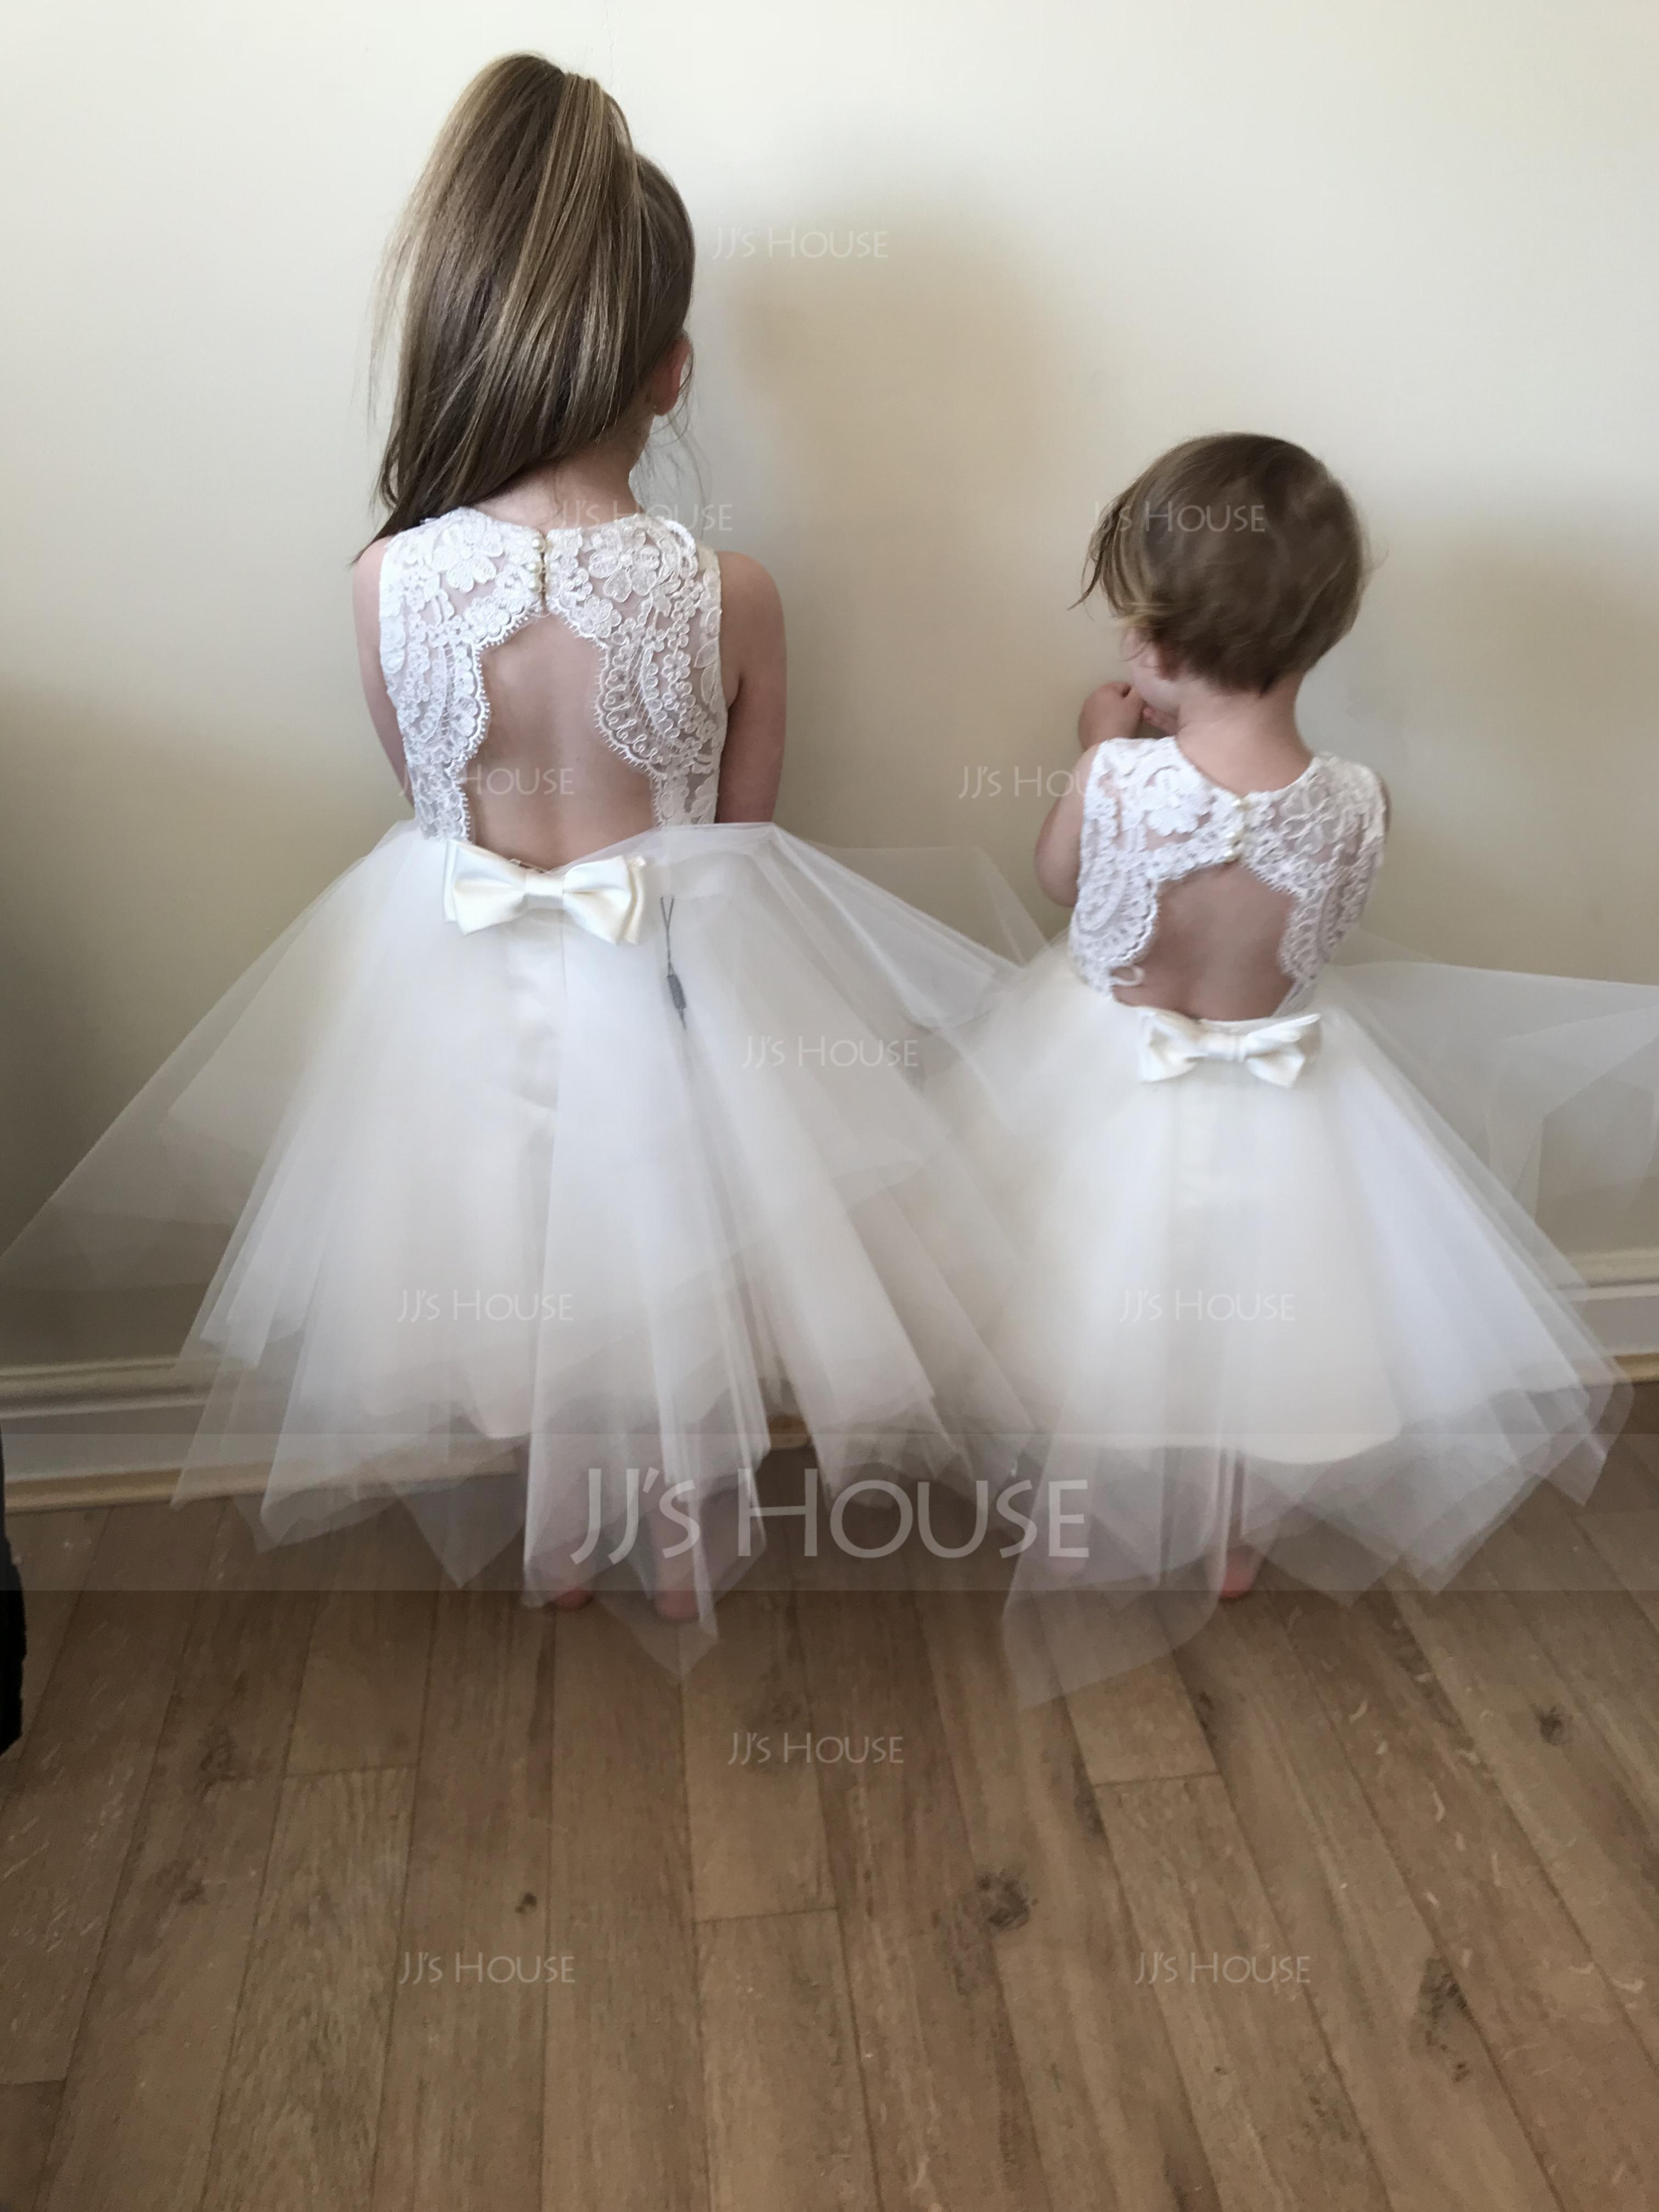 A-Line/Princess Knee-length Flower Girl Dress - Tulle/Lace Sleeveless Scoop Neck With Back Hole (010144109)